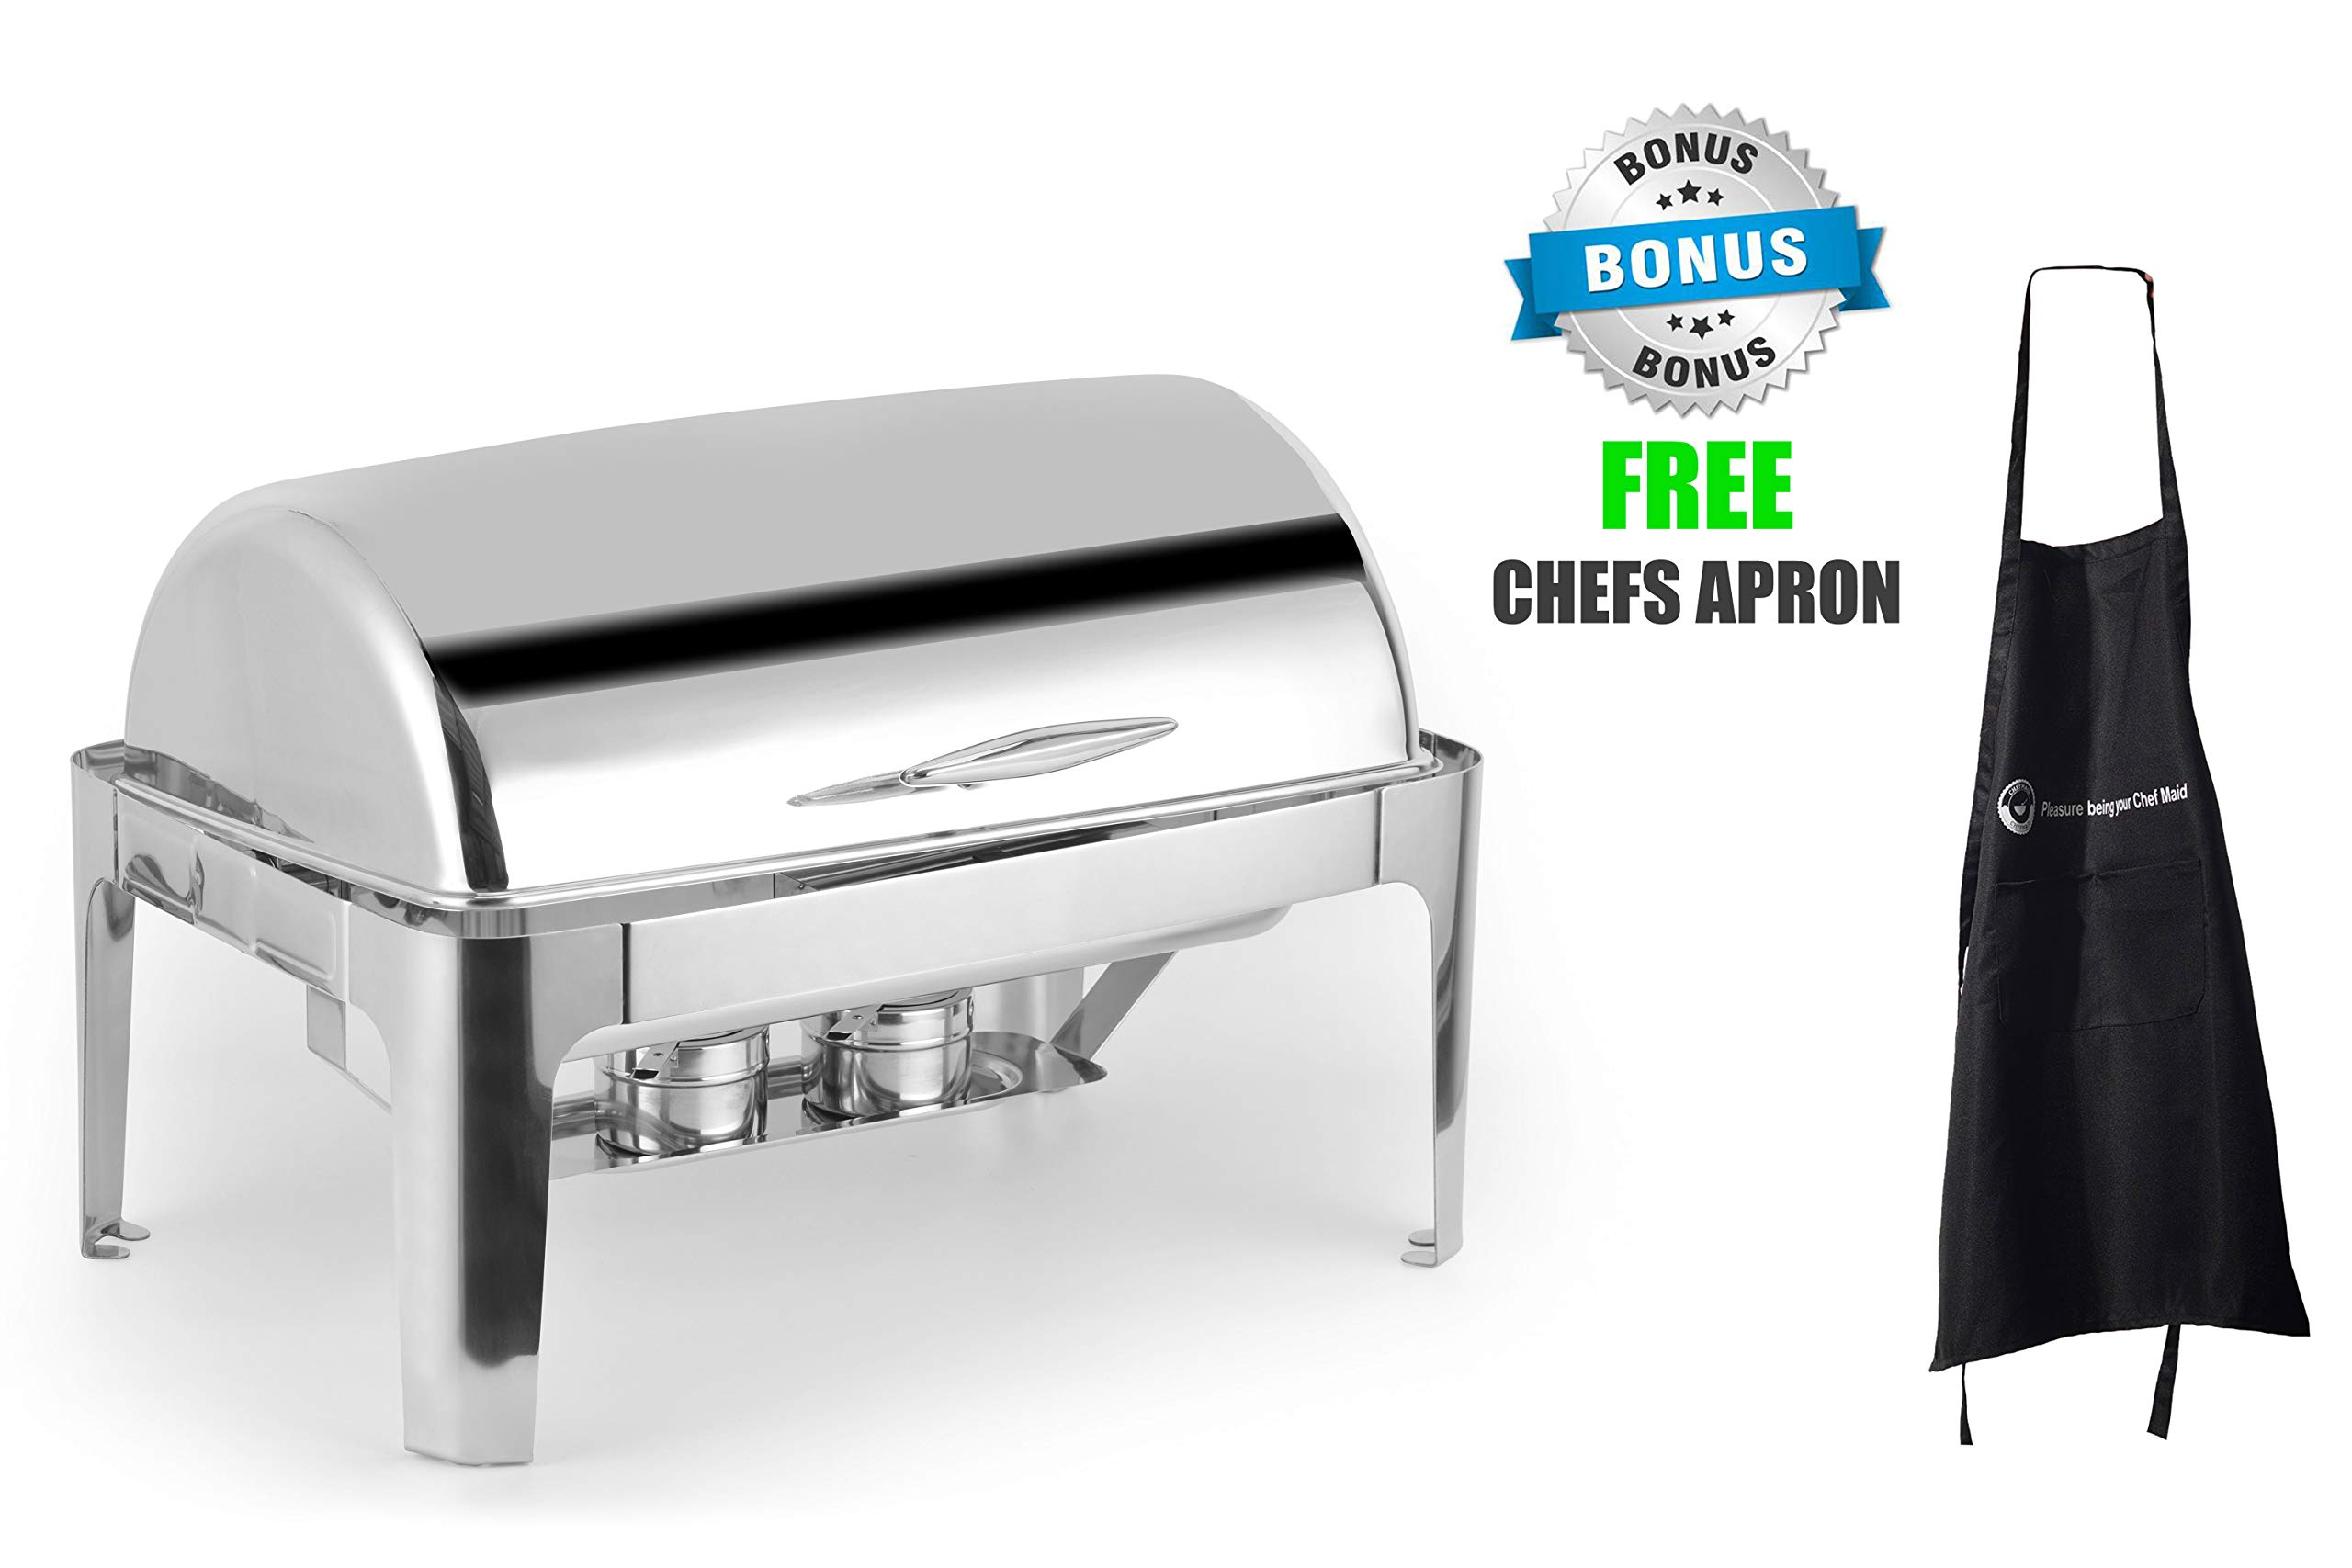 Deluxe Chafer Dish - 8-quart capacity - Full-Size S/S - rectangular - Includes Food Pan, Water Pan and Fuel Holders - and durable, shiny silver, keeps food warm in catered events